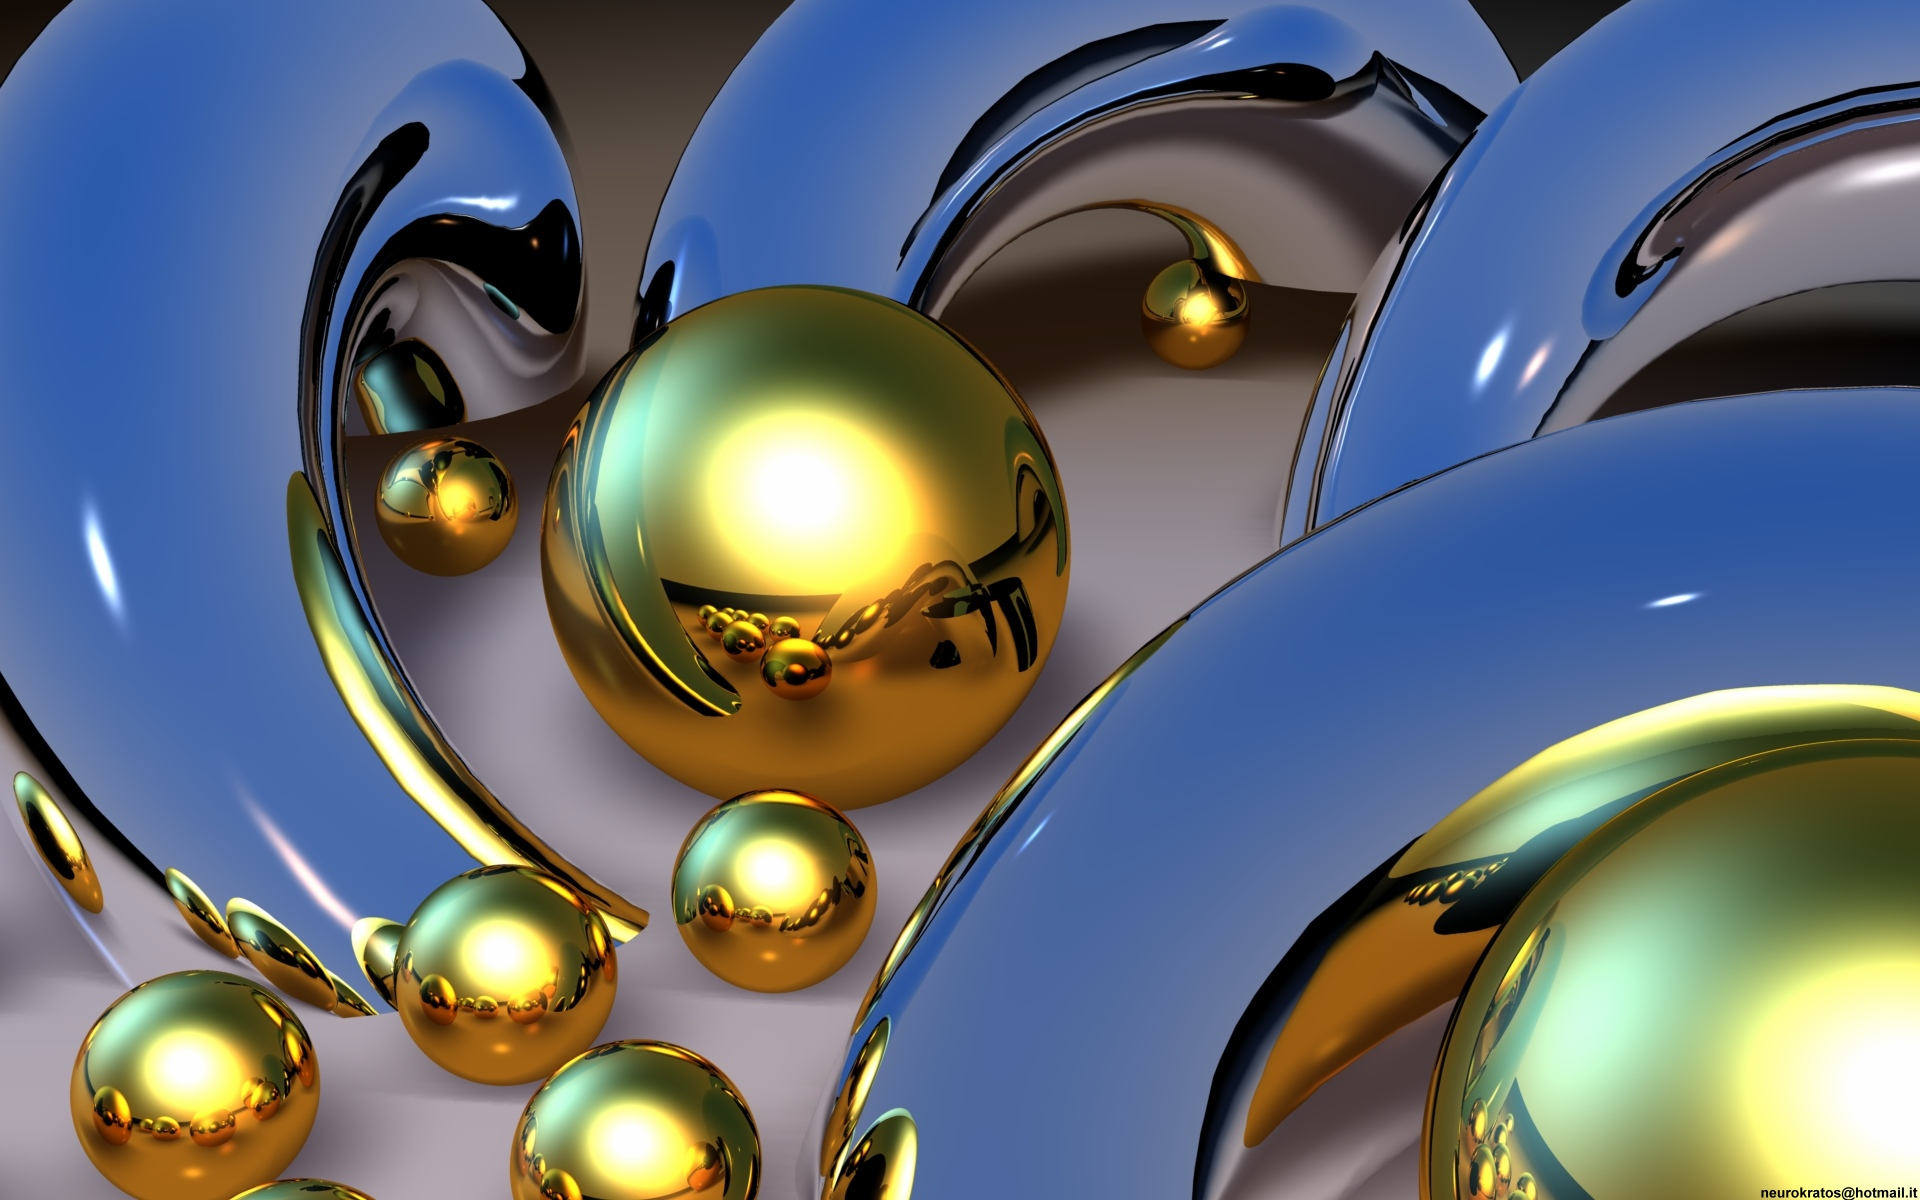 CGI - Cool  - Chrome - Gold - Silver - Metal - Cgi Wallpaper